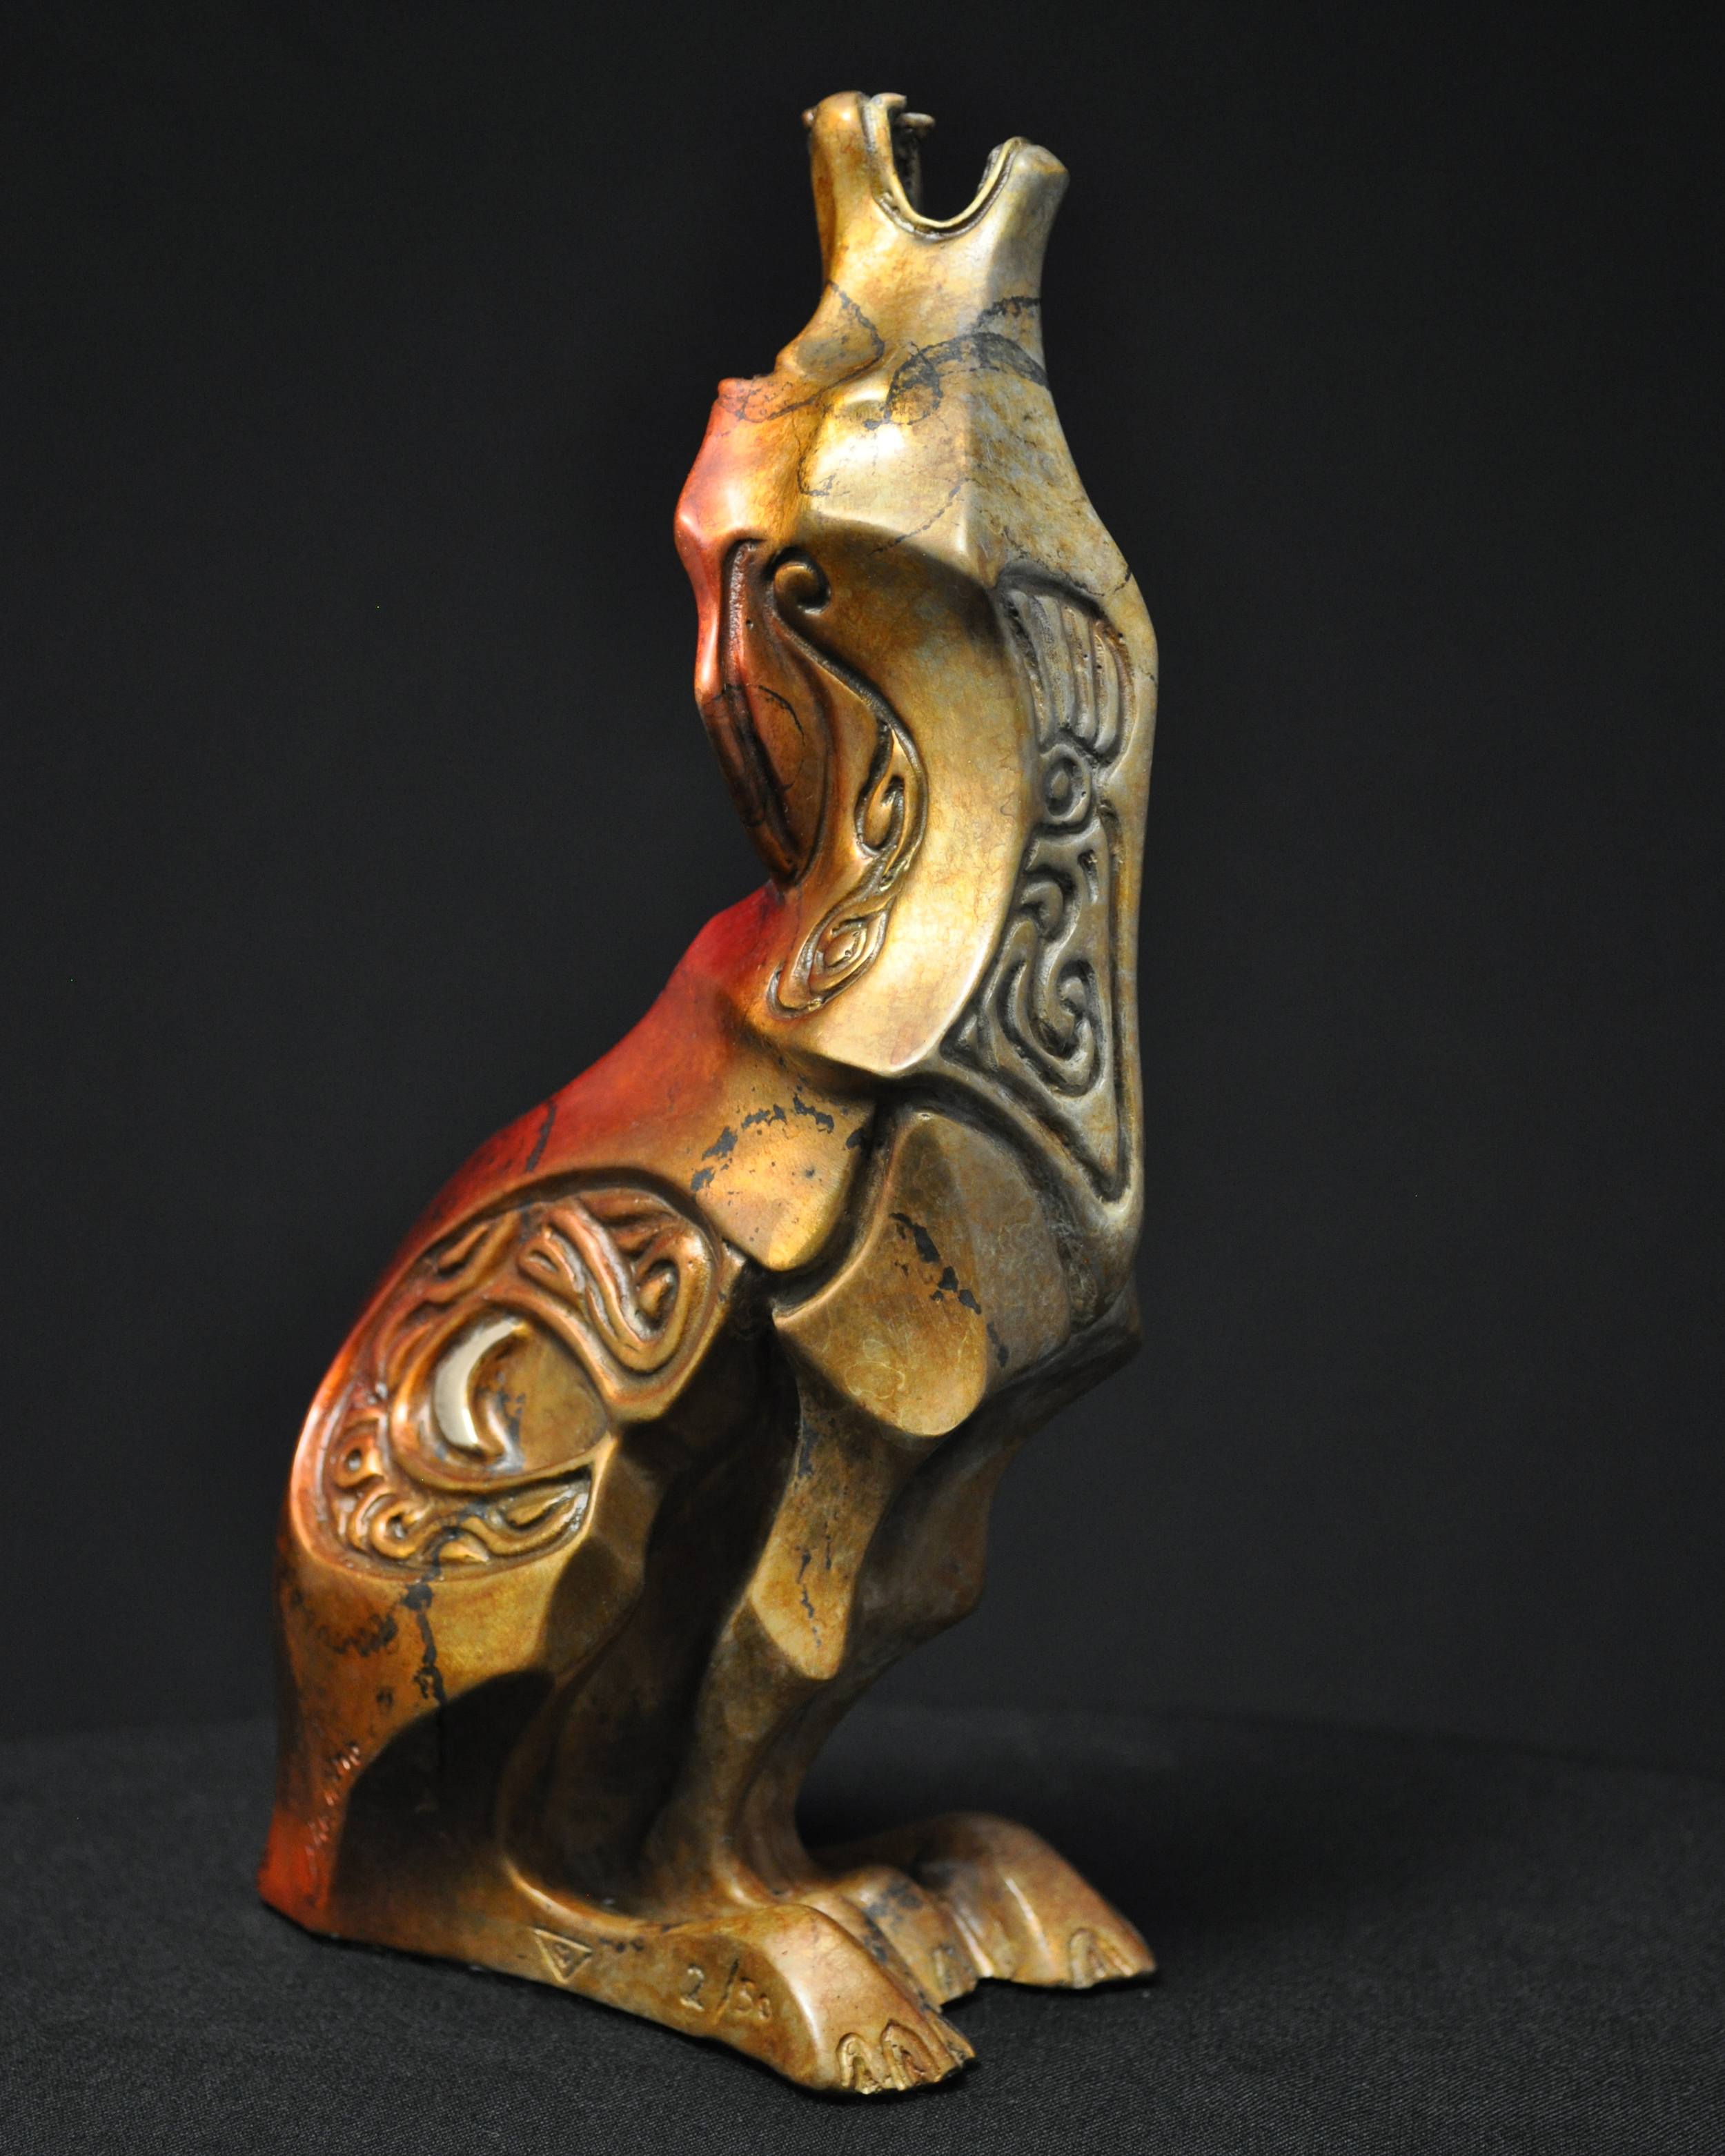 bronze-small-coyote-sculpture-john-maisano-10.jpg